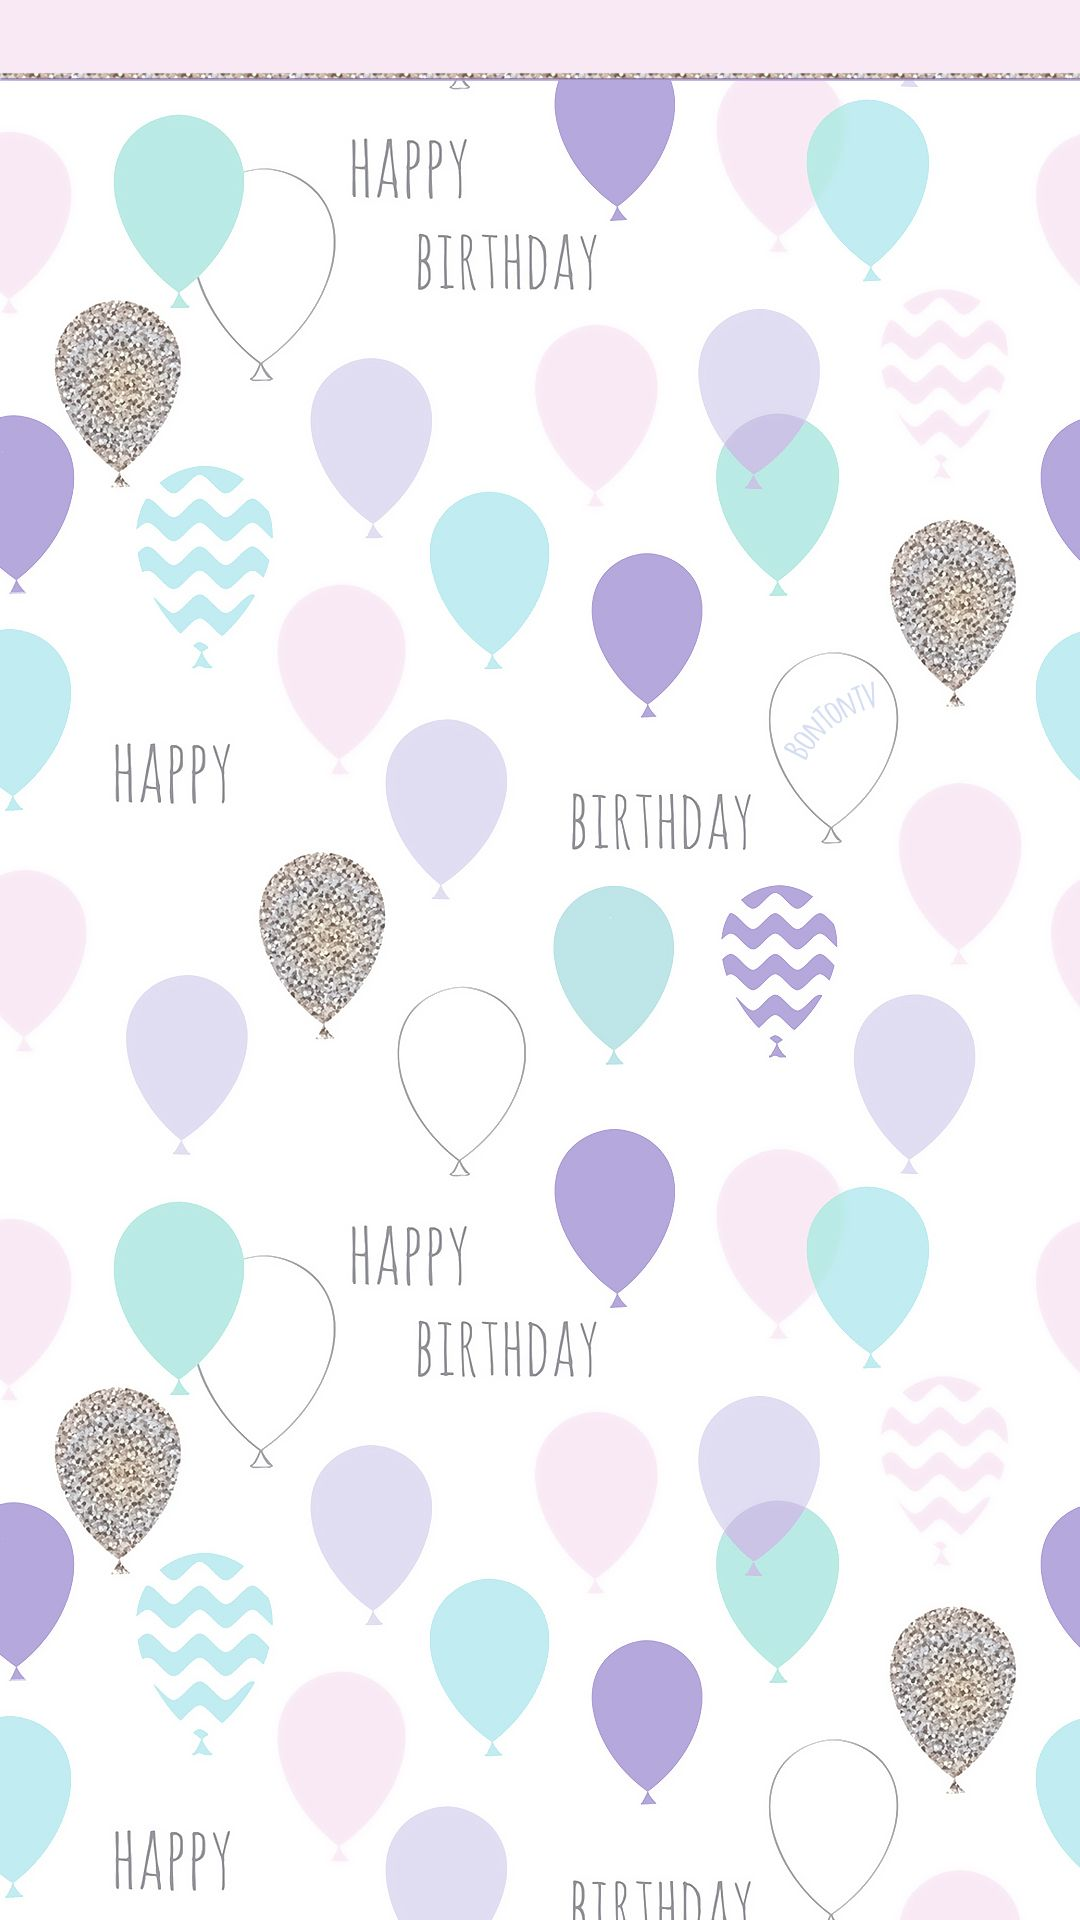 Phone Wallpapers Hd Happy Birthday Pastel By Bonton Tv Free